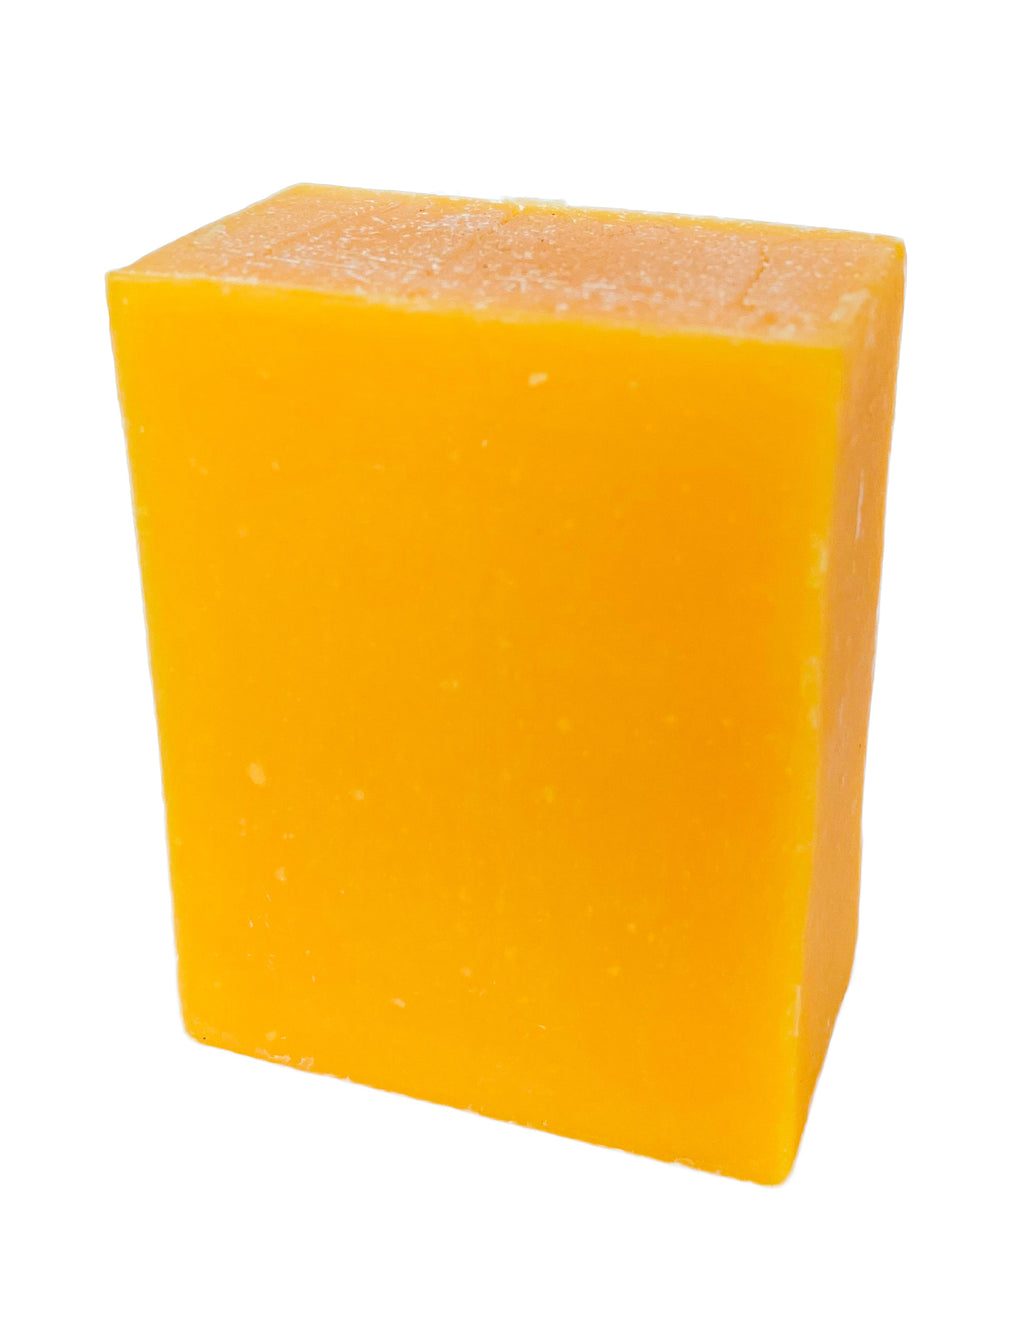 Hala Pineapple - 4.4 oz. Hawaiian Naturals Soap